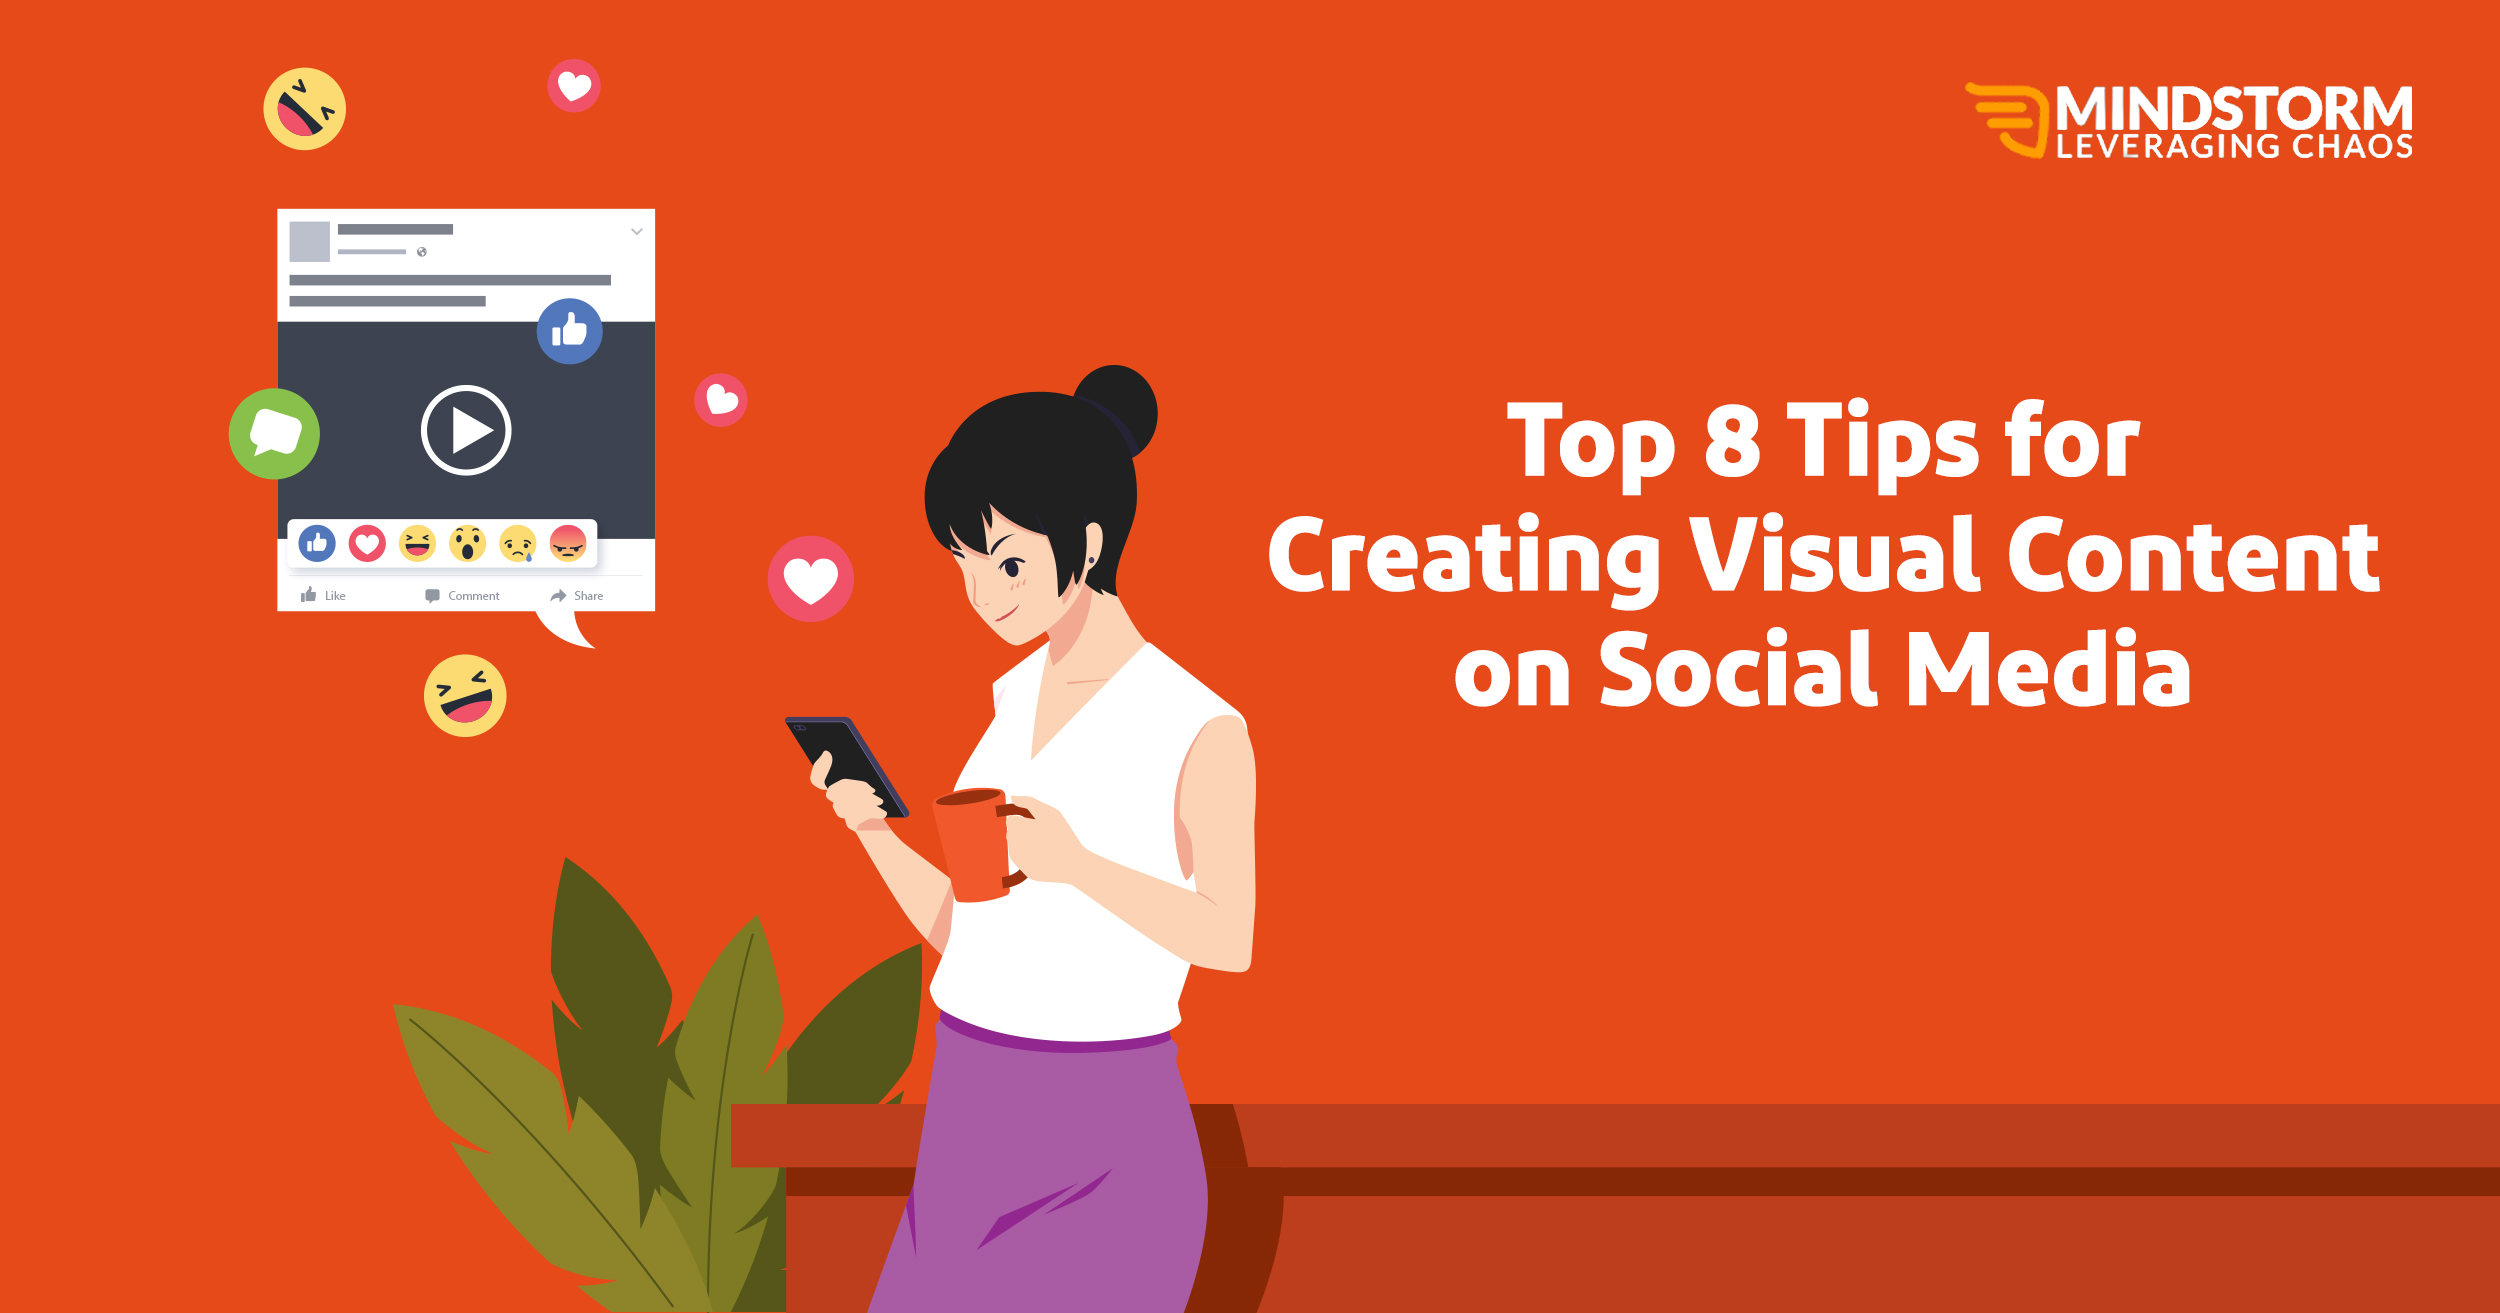 Top 8 Tips for Creating Visual Content on Social Media